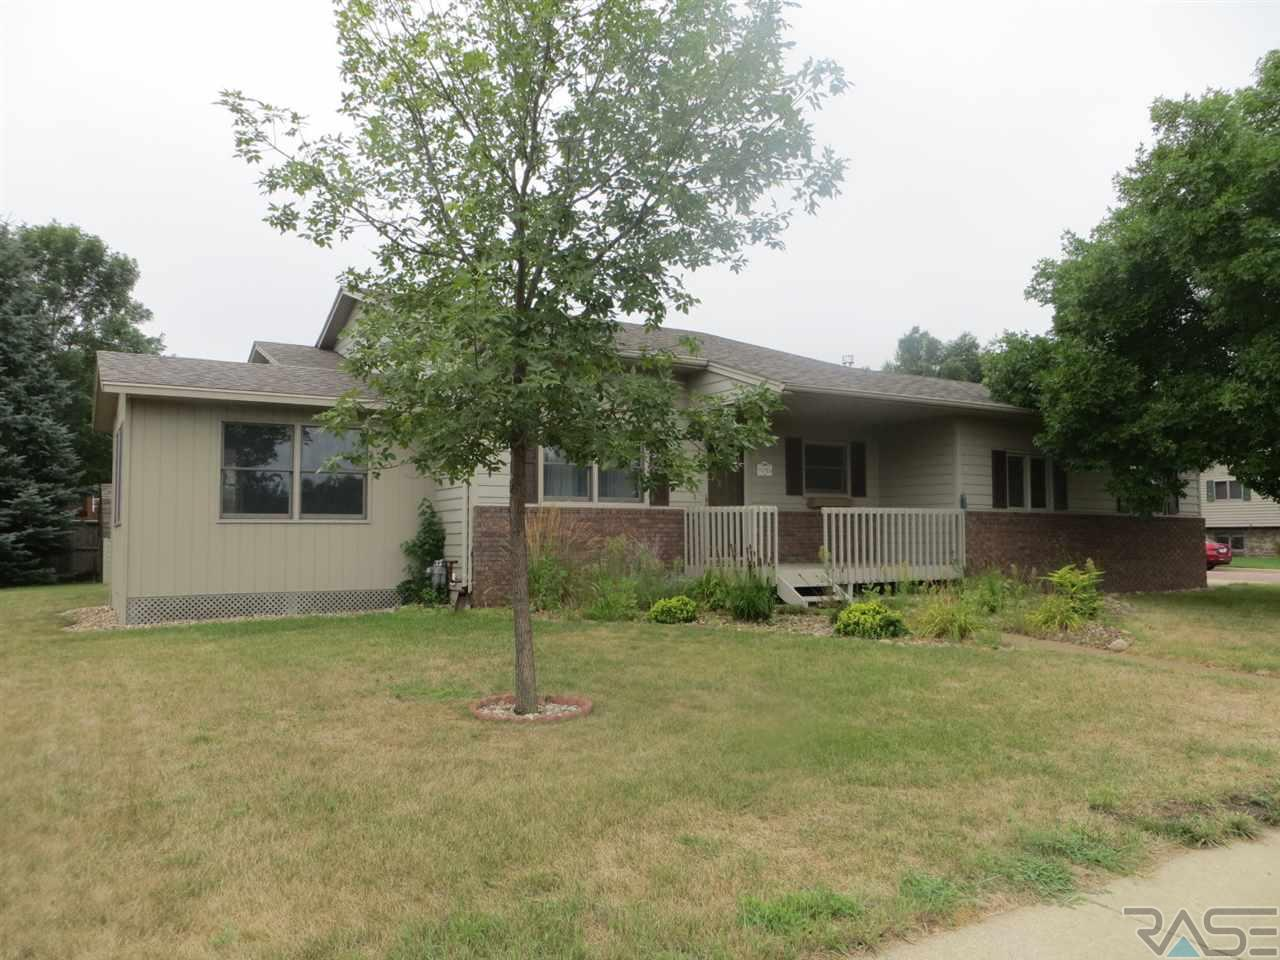 5705 W Silver Valley Dr, SIOUX FALLS